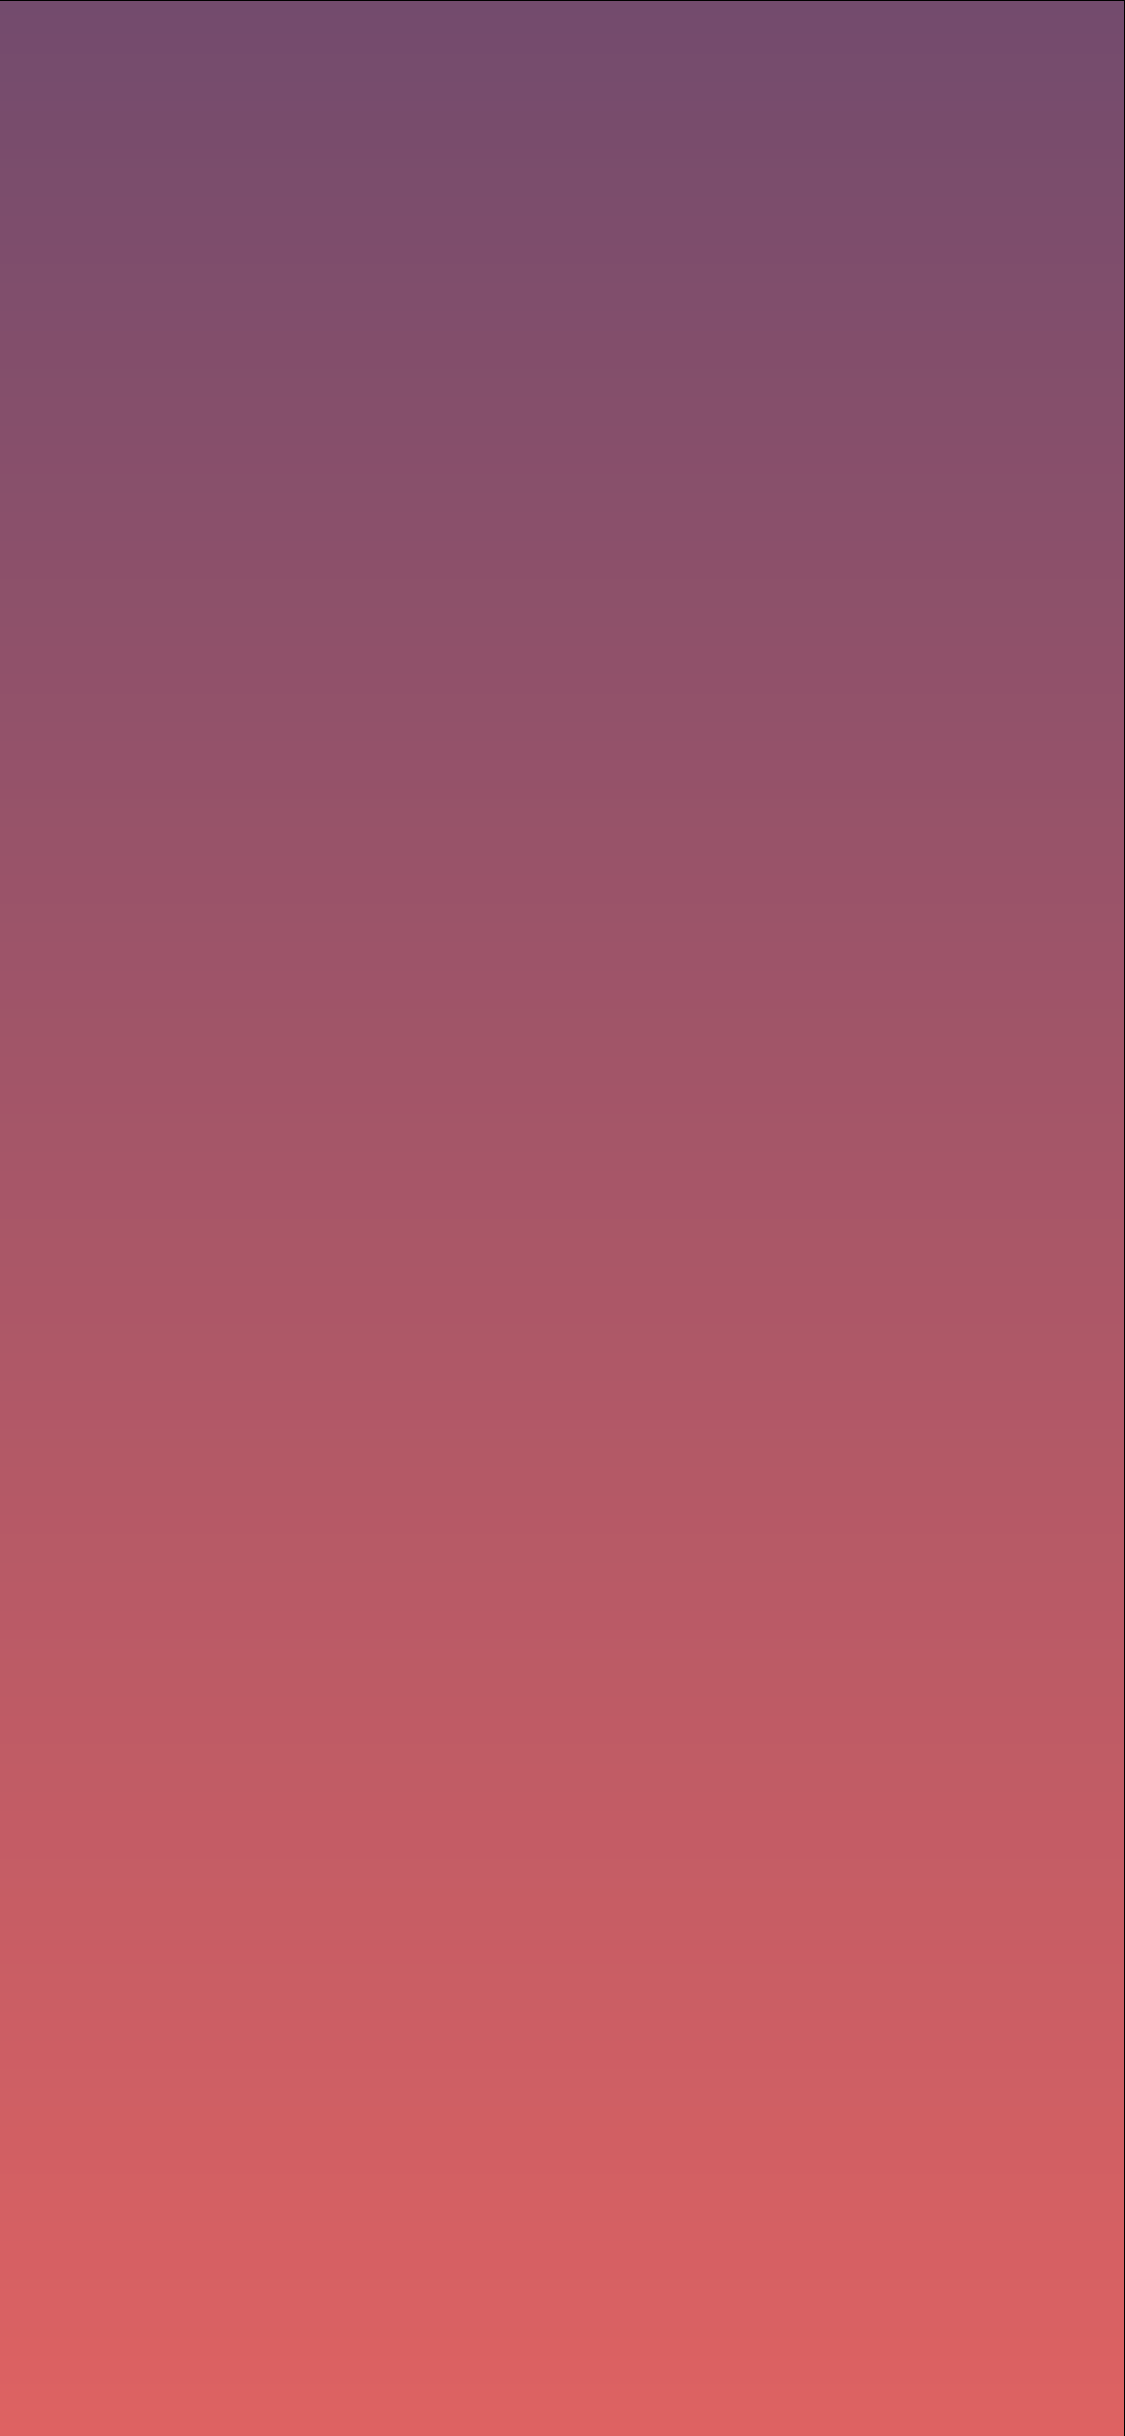 Gradient Wallpaper For Iphone 11 Pro Max Red Wallpaper Holiday Red Color Quiz